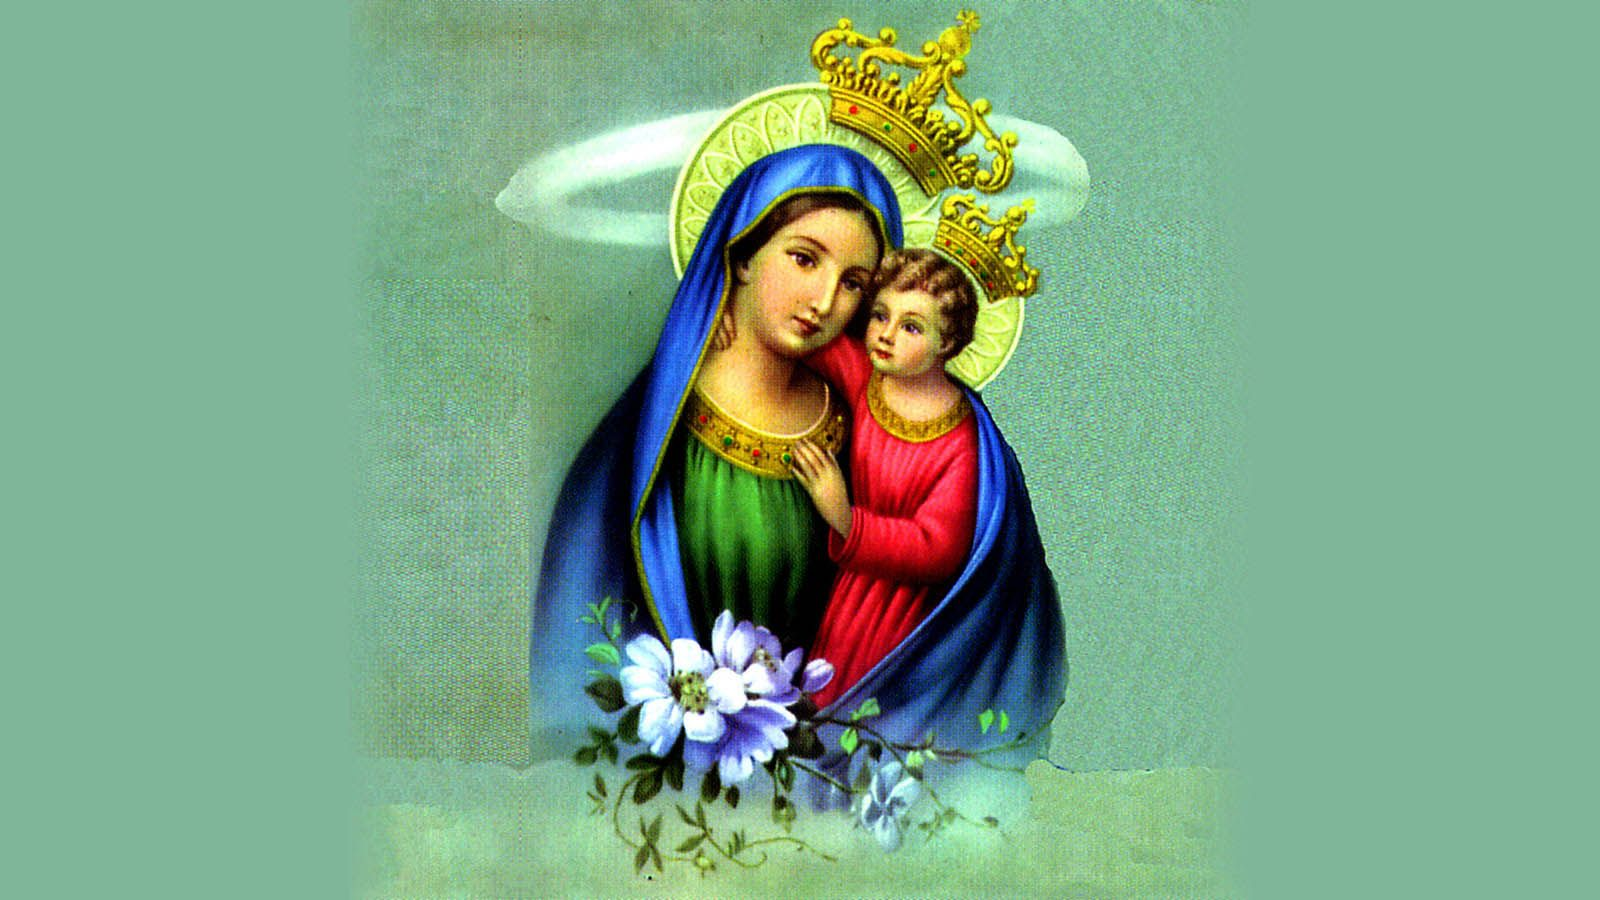 Holy mother mary pictures Virgin Mary Pictures 01 - Turnback To God